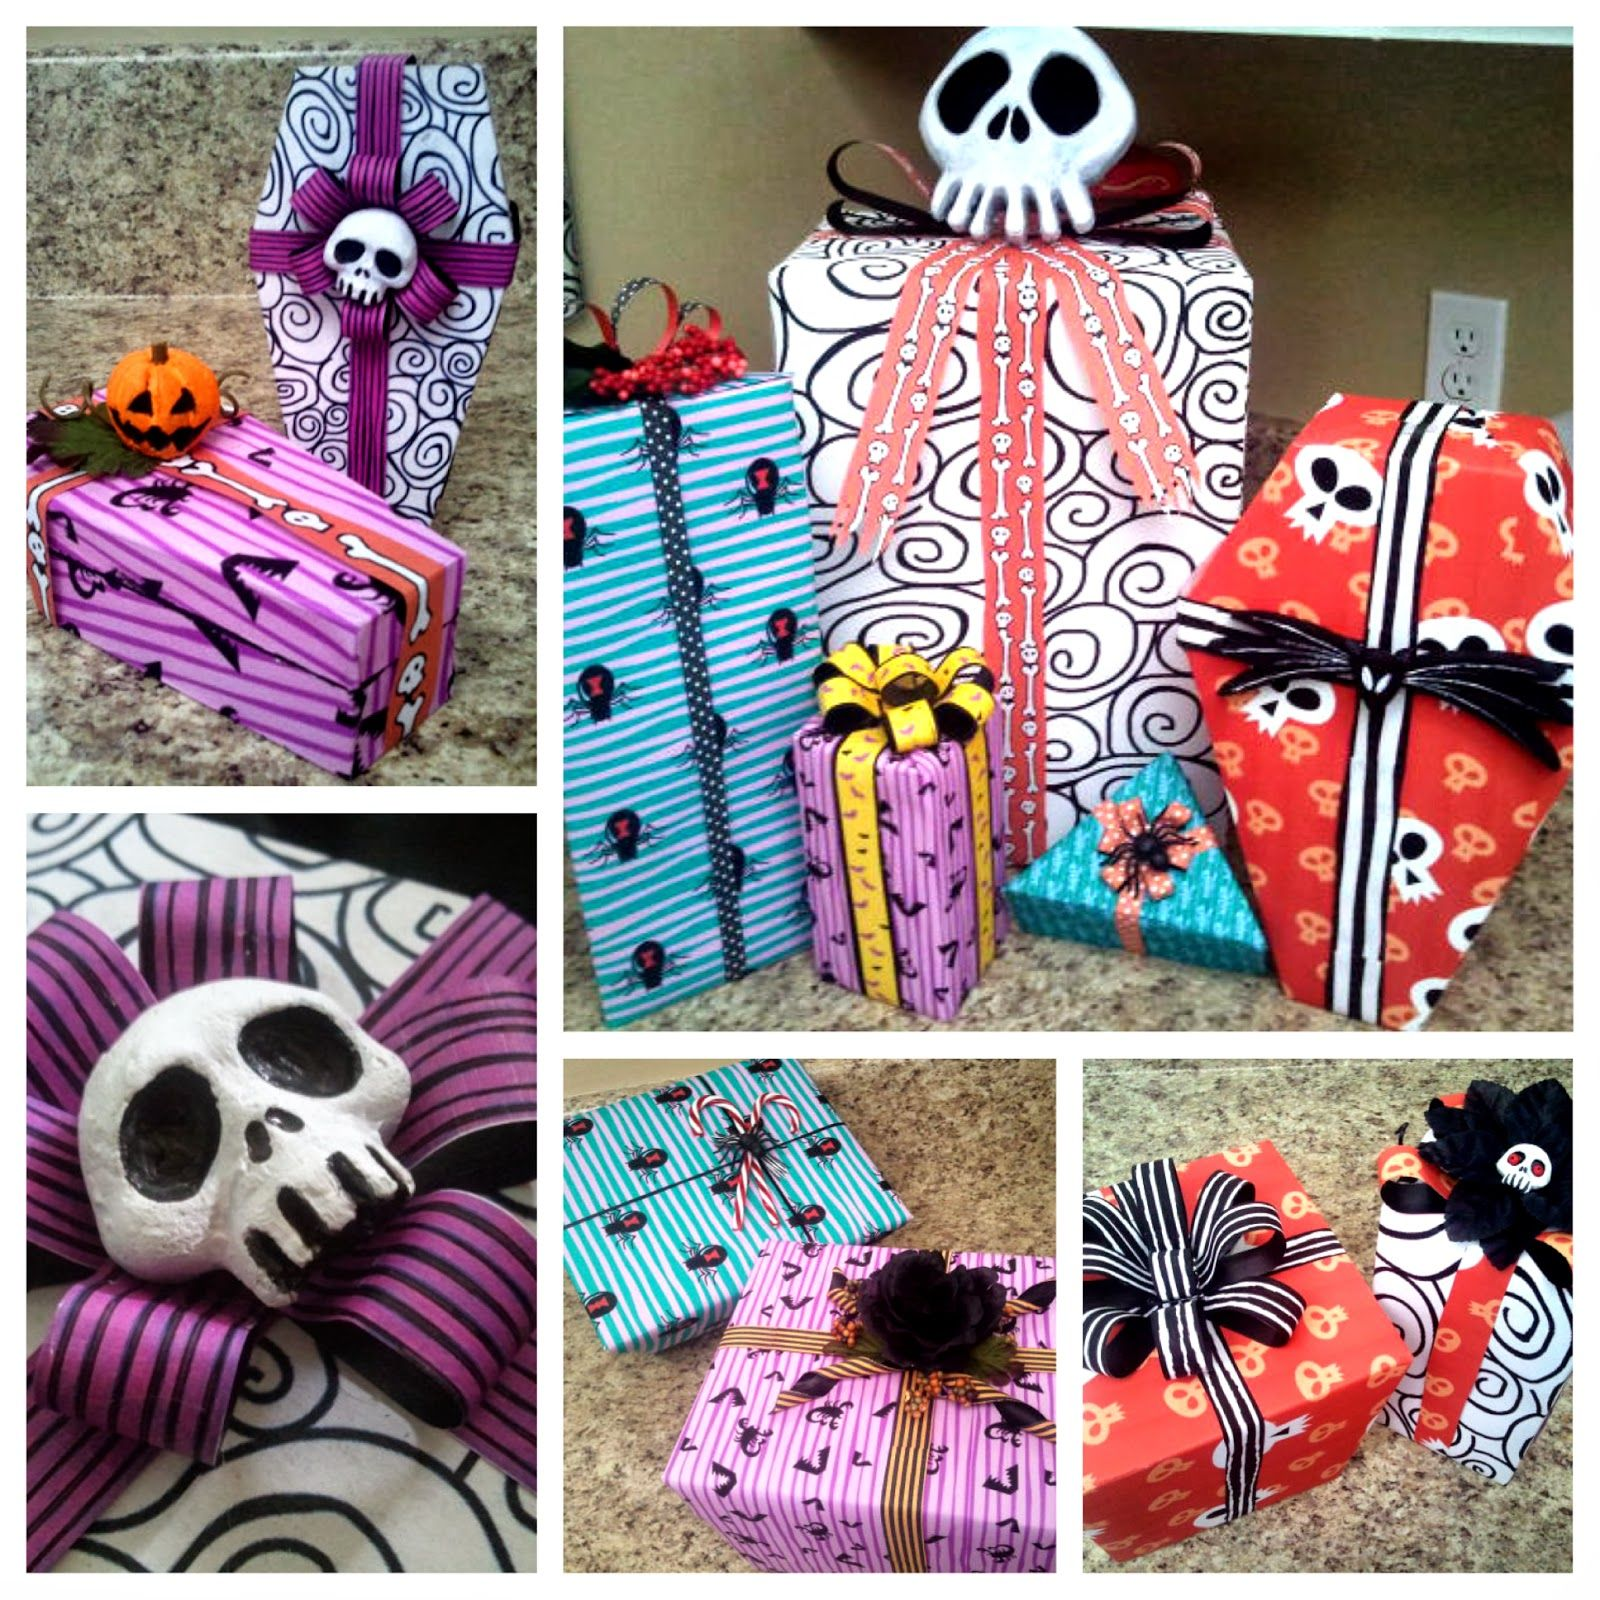 Nightmare Before Christmas Wrapping Paper Diy Tutorial Nightmare